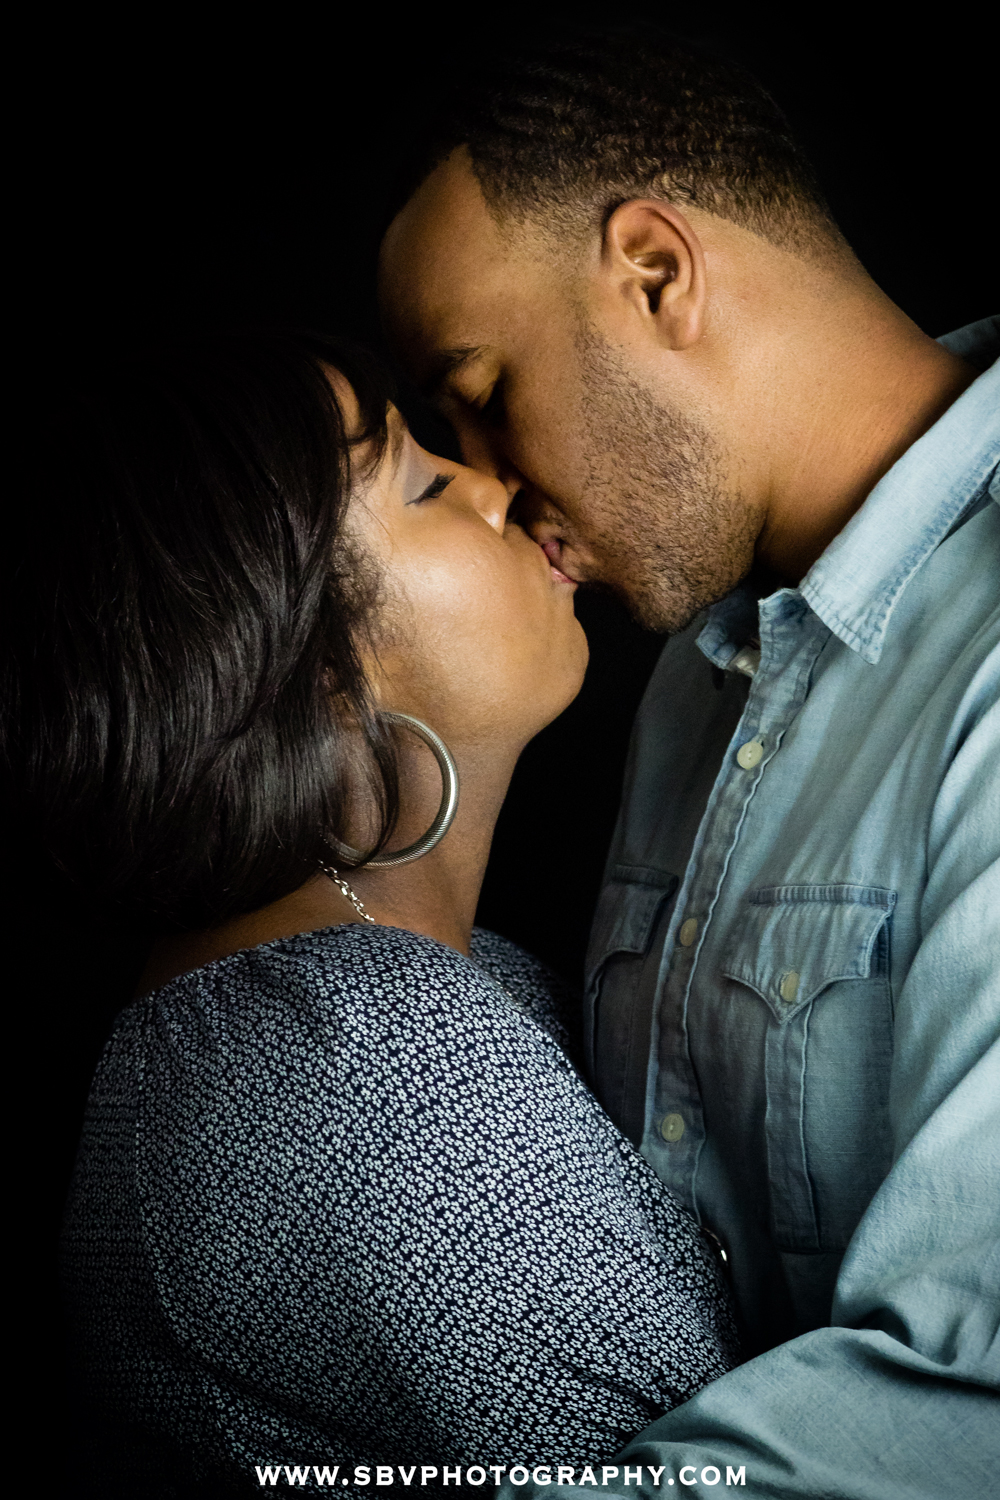 Romantic kiss during a studio portrait session in Crown Point, Indiana.